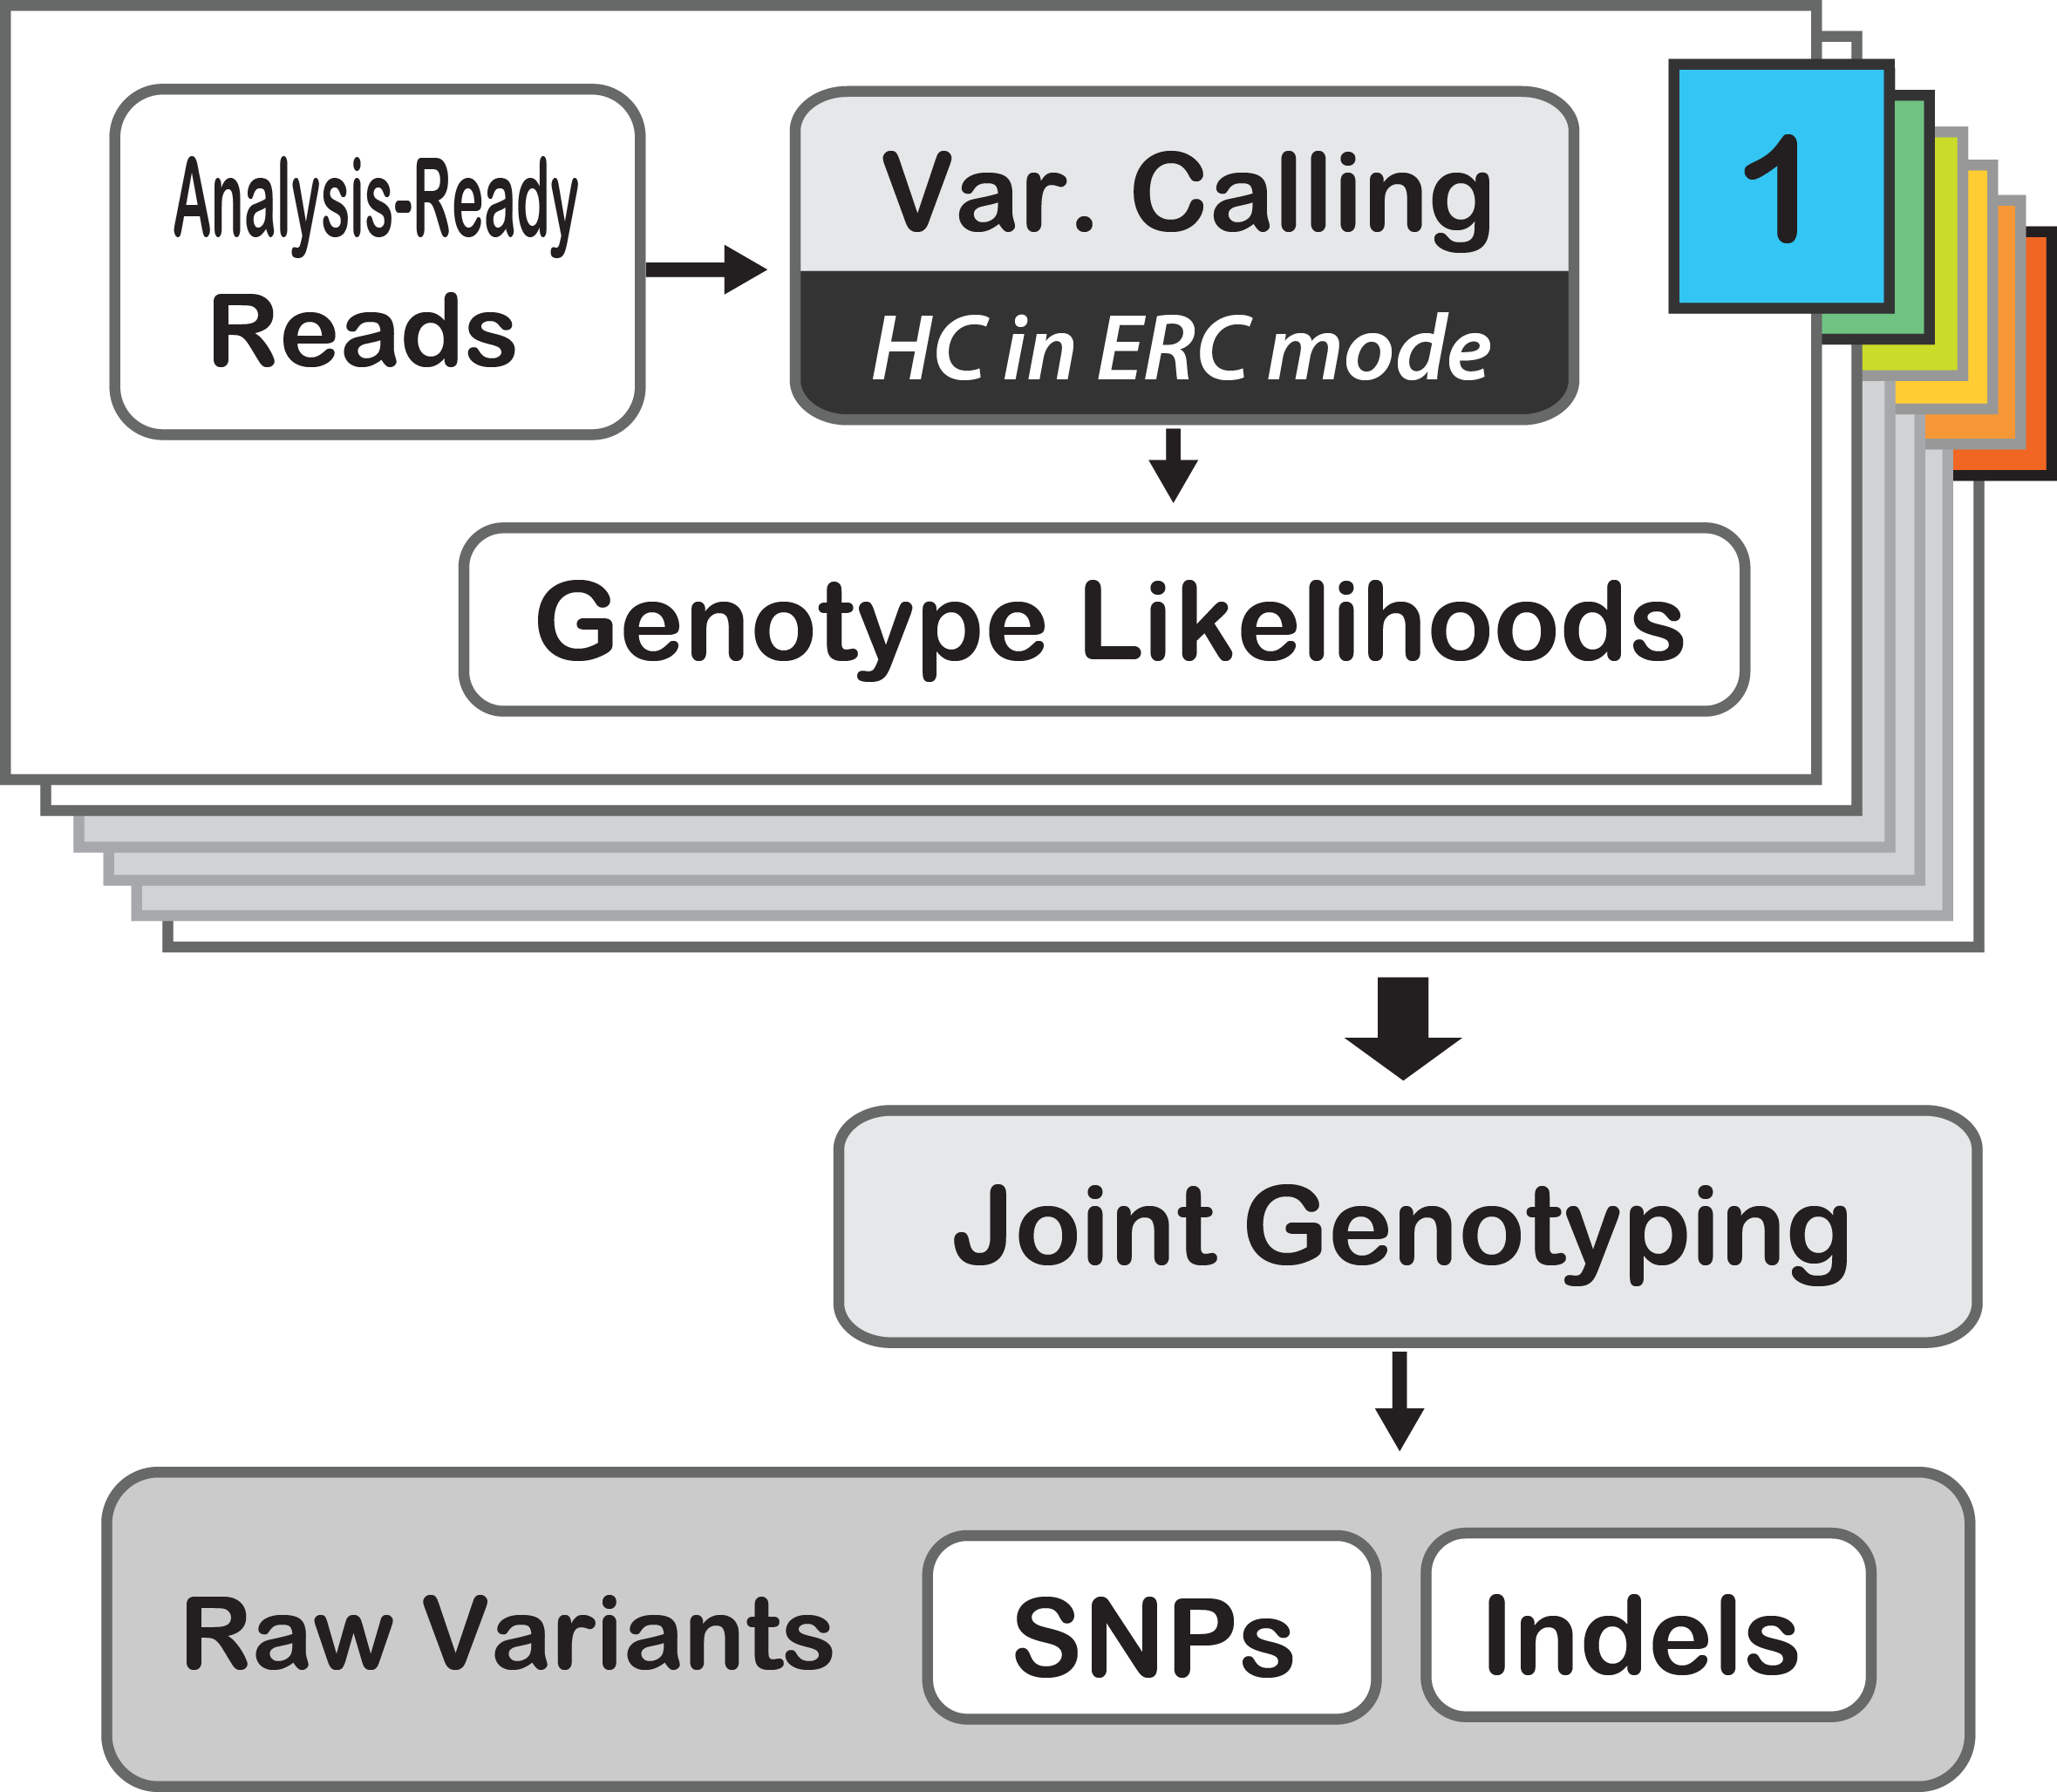 Our Main Purpose Is To Demonstrate An Effective Workflow For Calling  Germline Snps And Indels In Cohorts Of Multiple Samples This Workflow Can  Be Applied